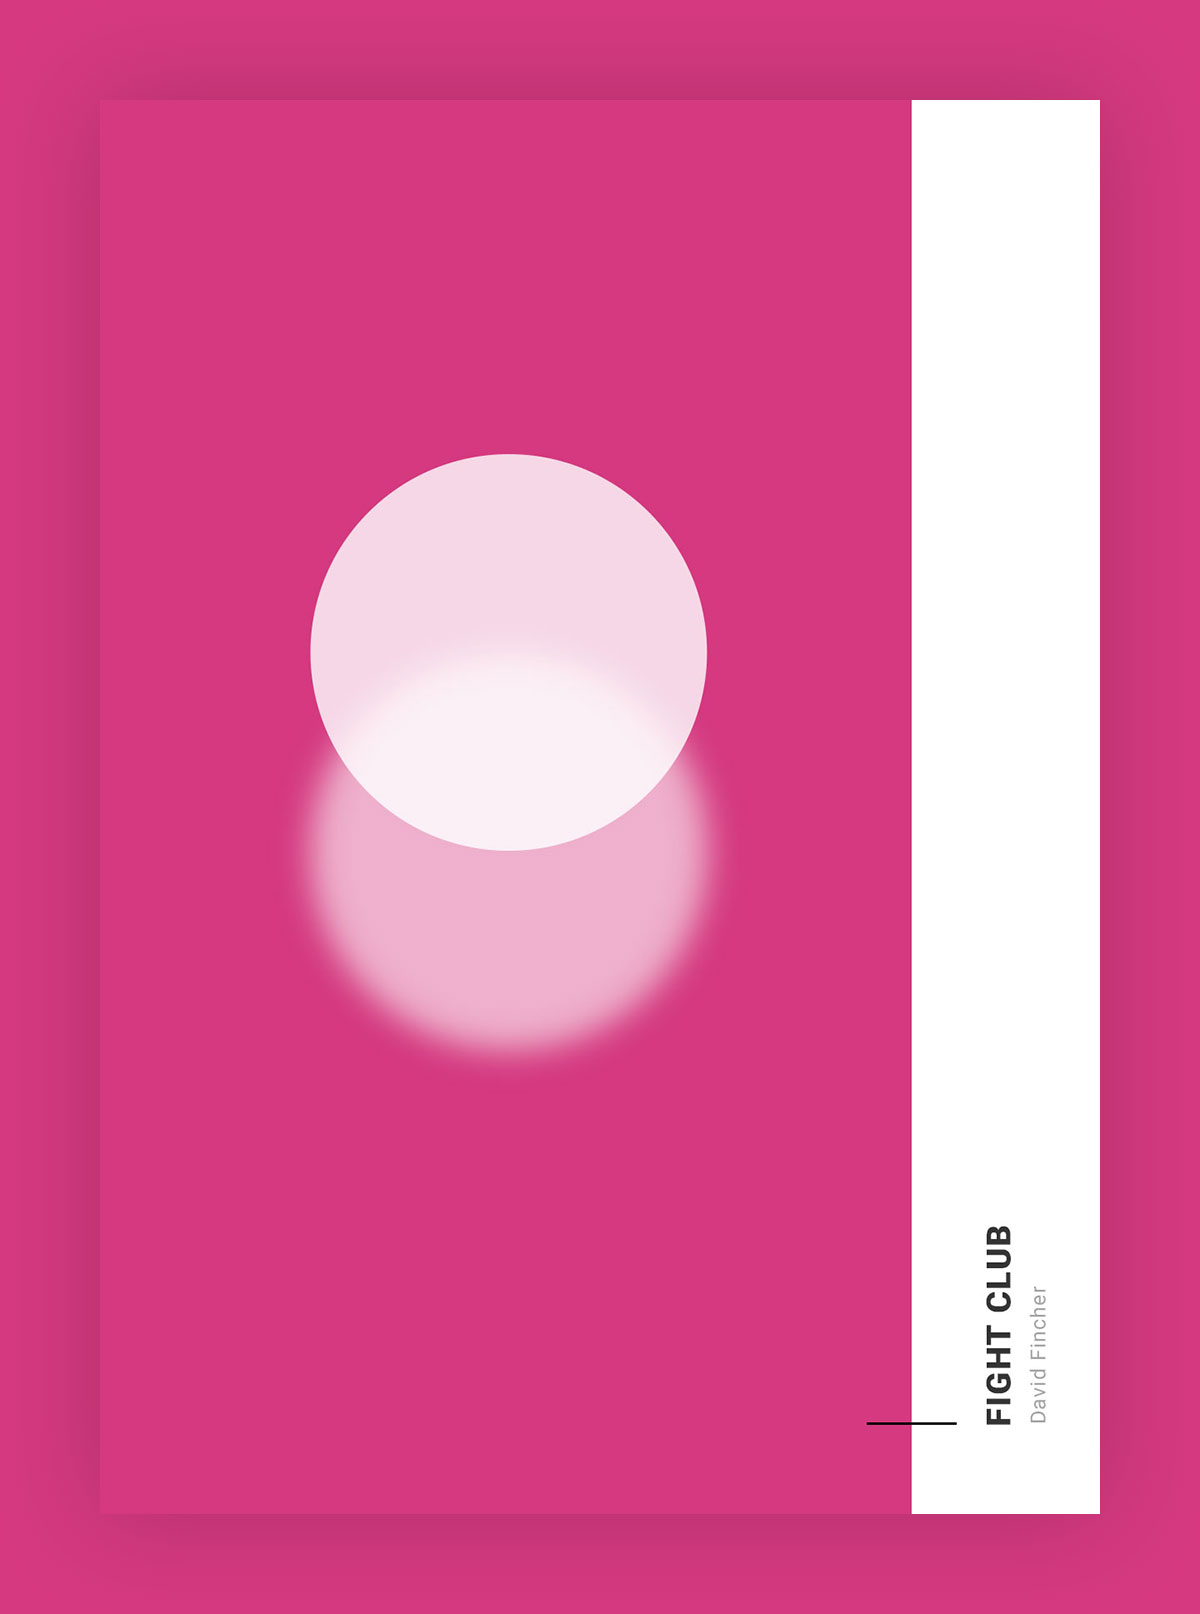 Minimal Movie Posters With Just Circles - Minimal movie posters nick barclay